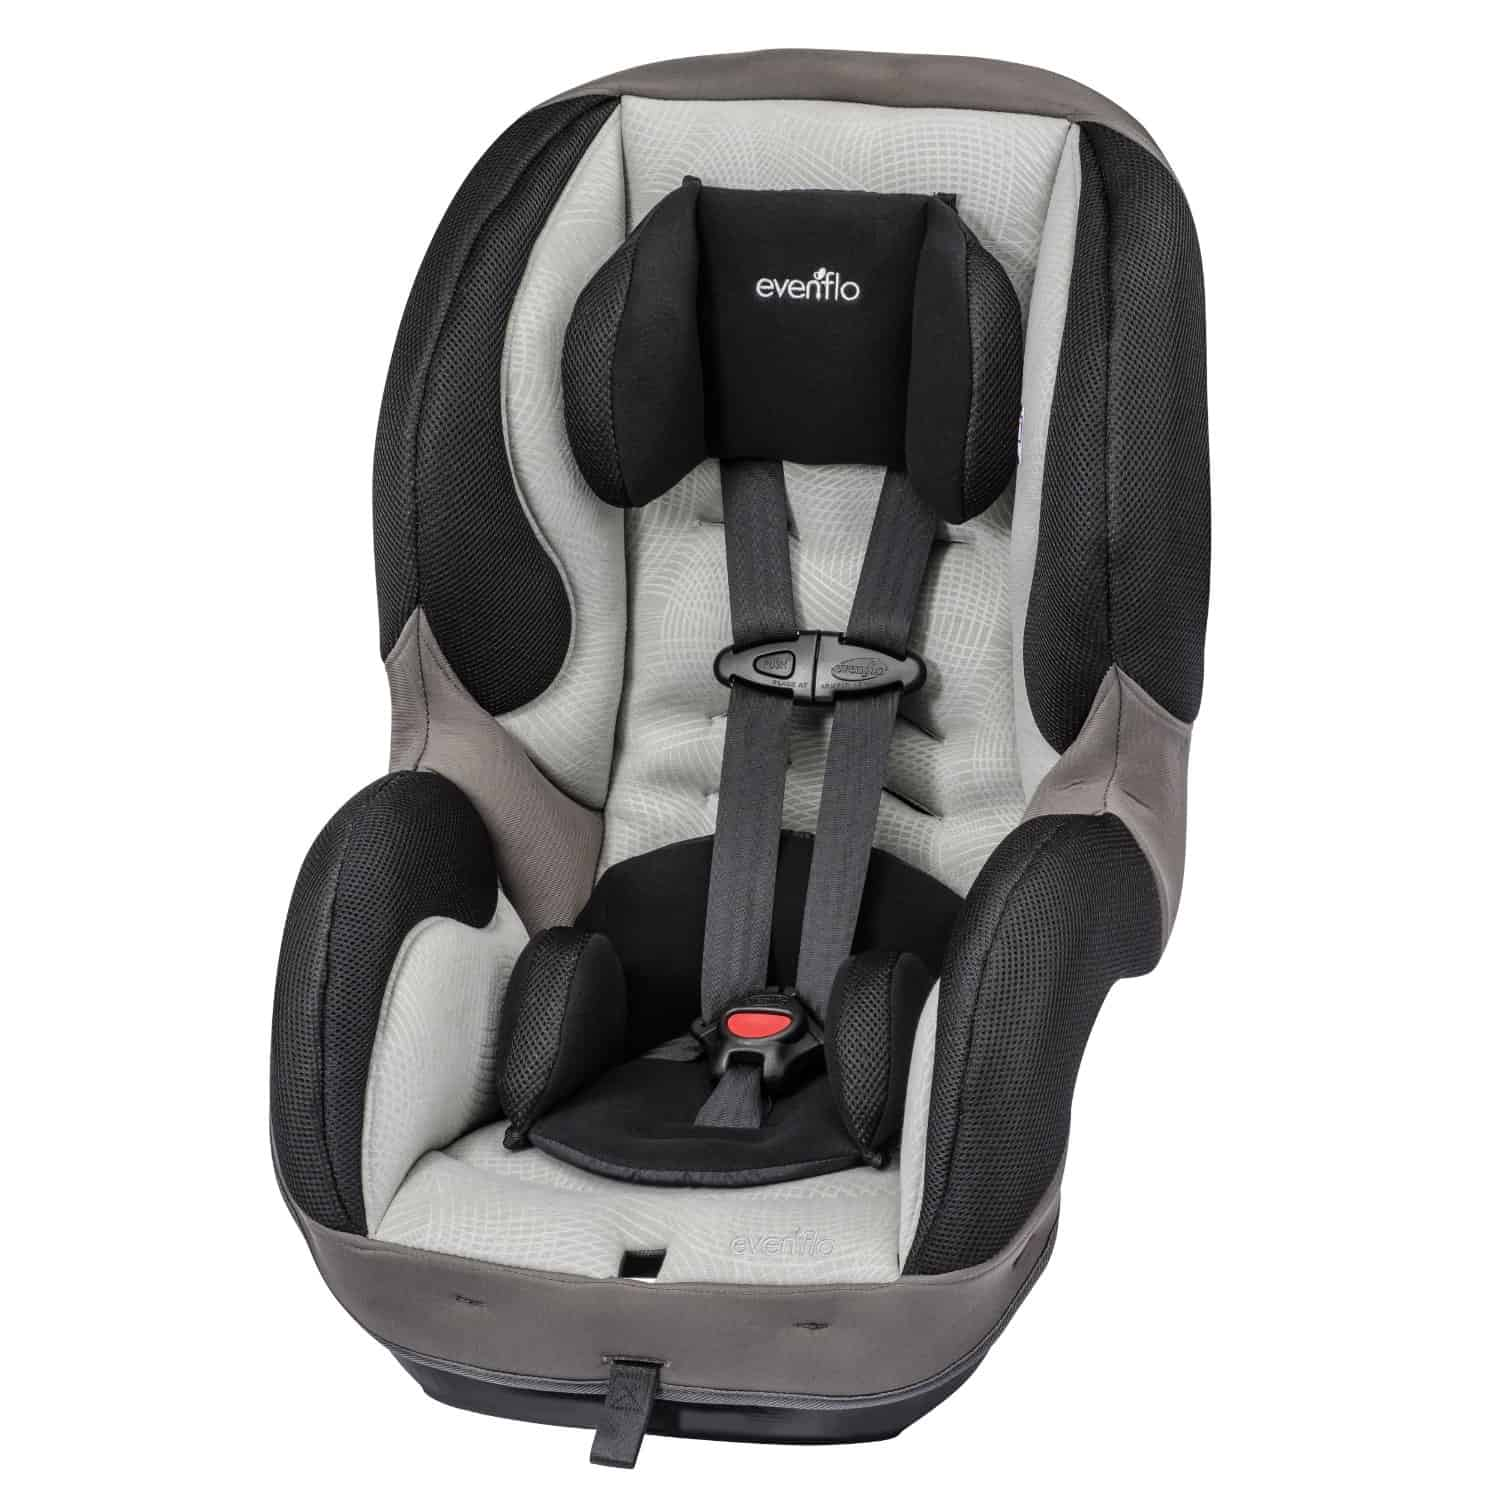 Convertible Car Seat Review Evenflo Sureride